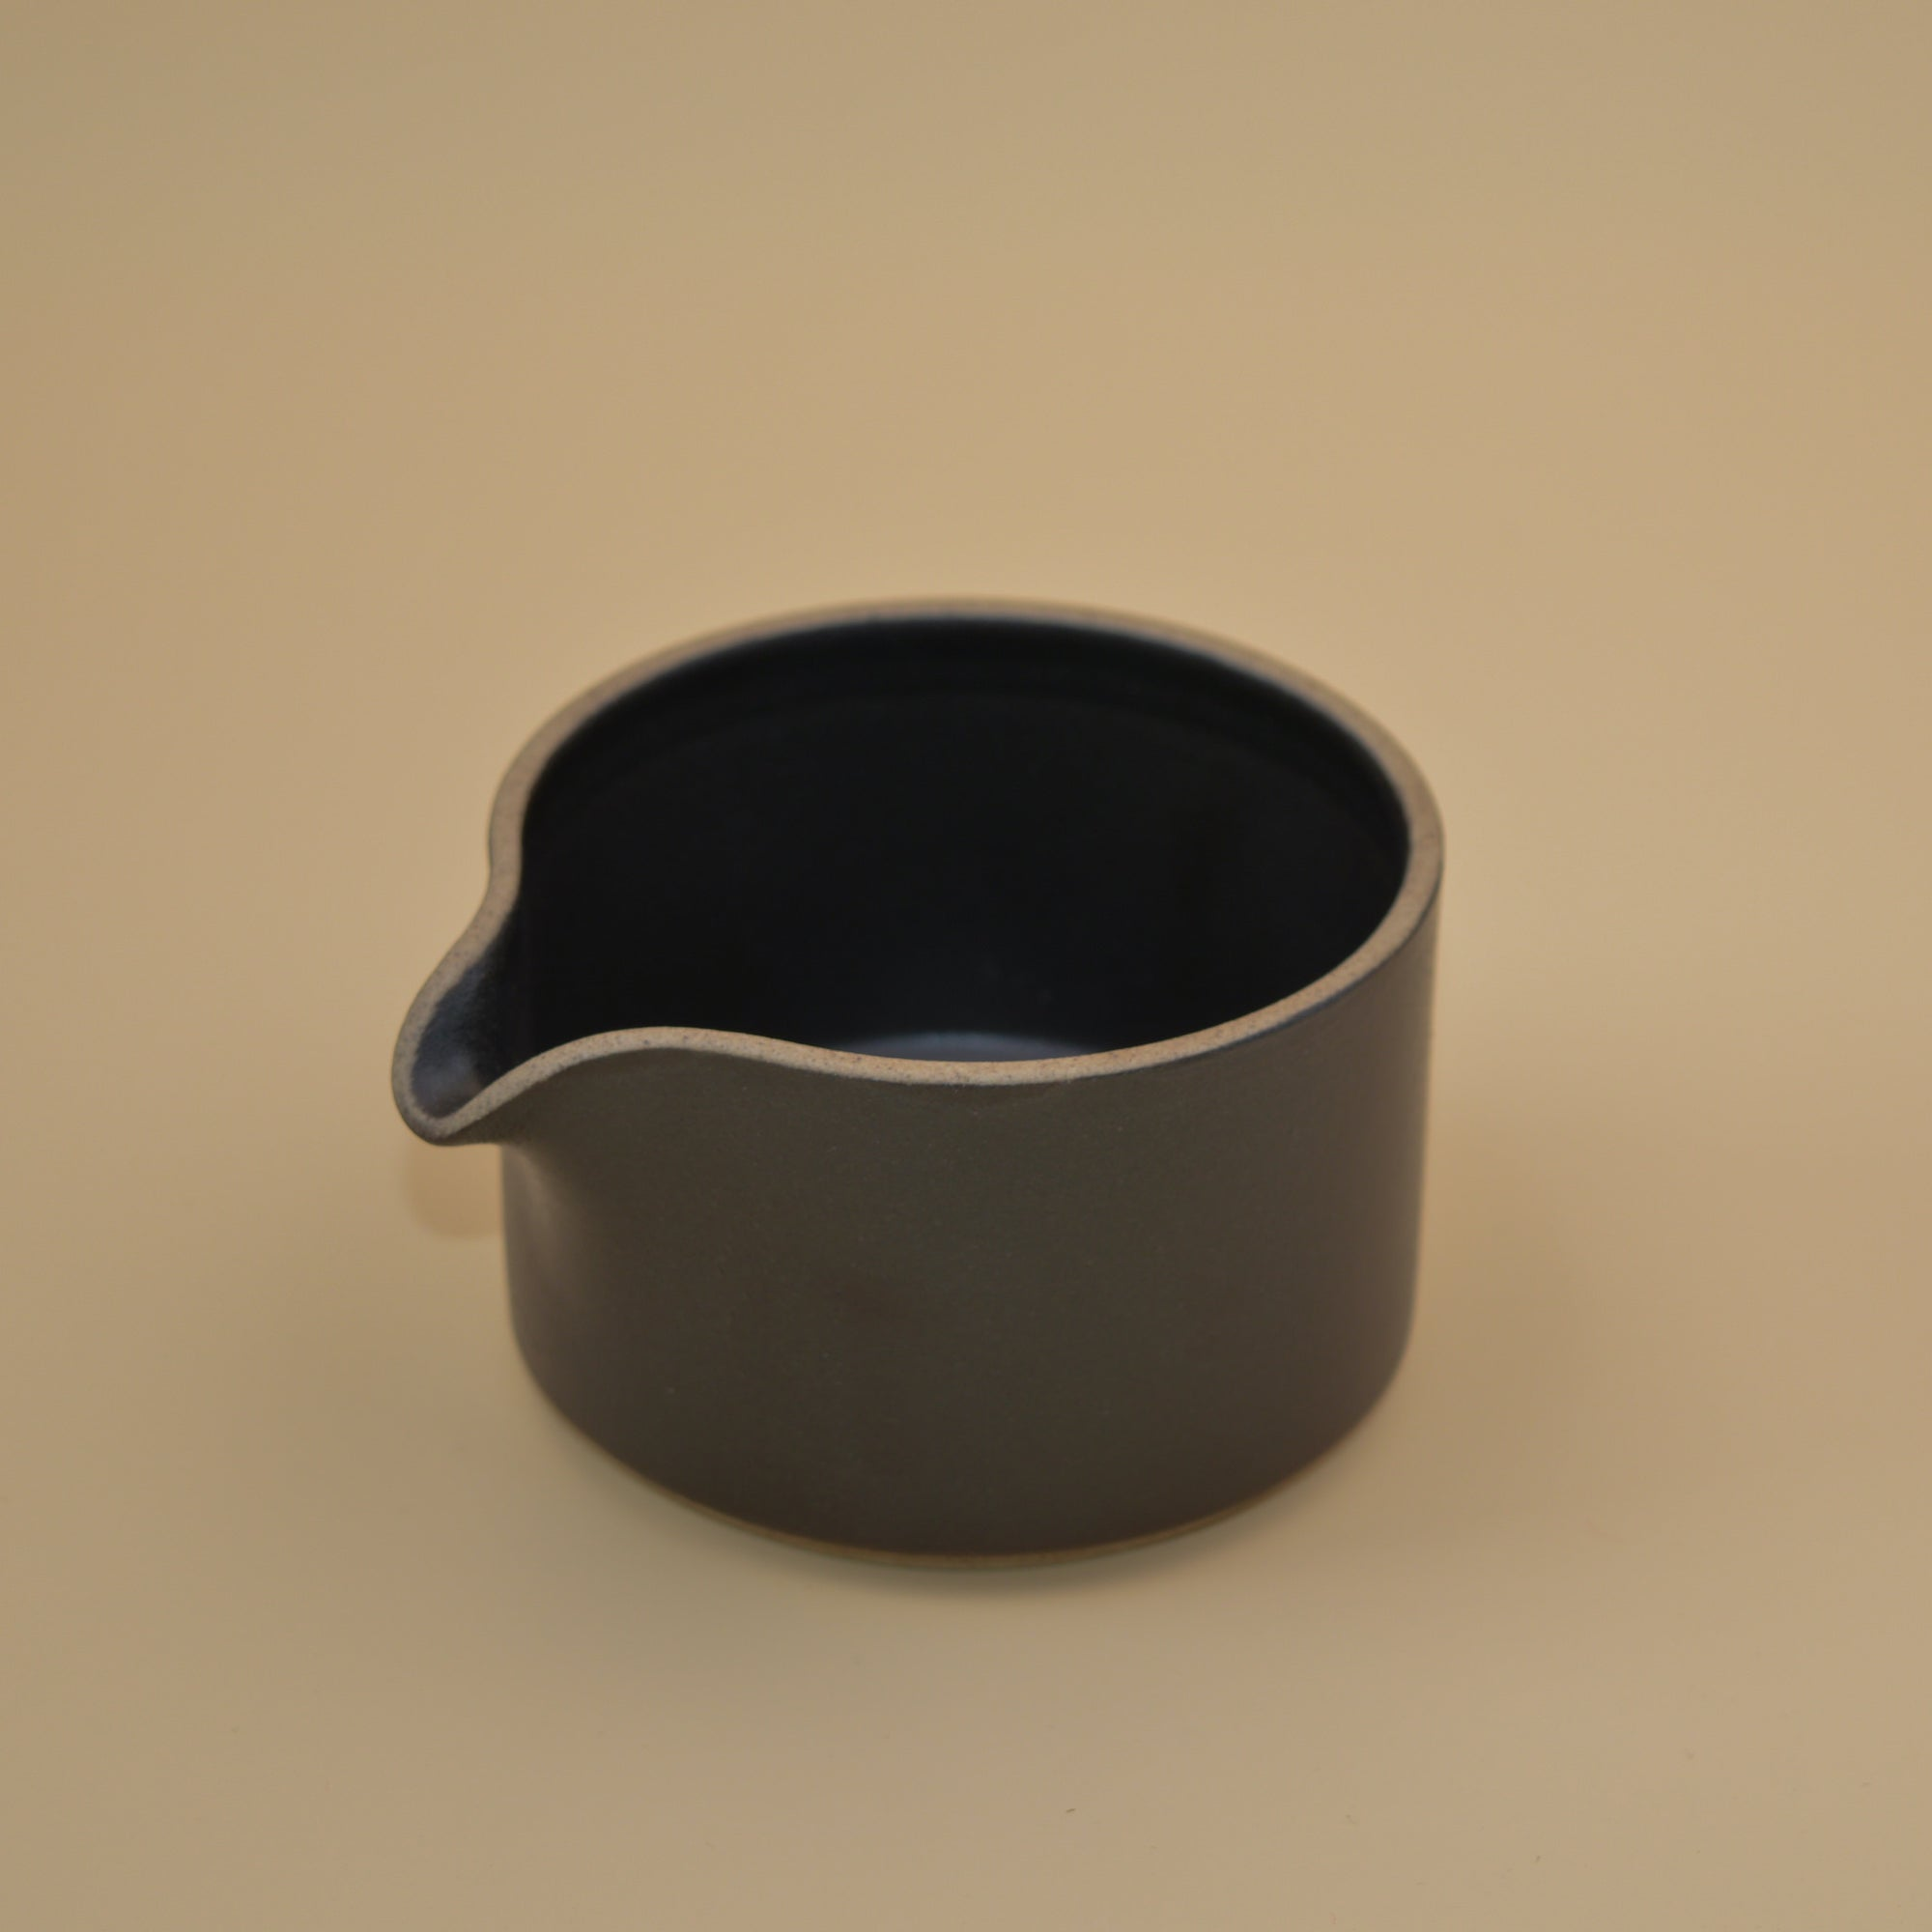 Hasami Porcelain Milk Pitcher (black)